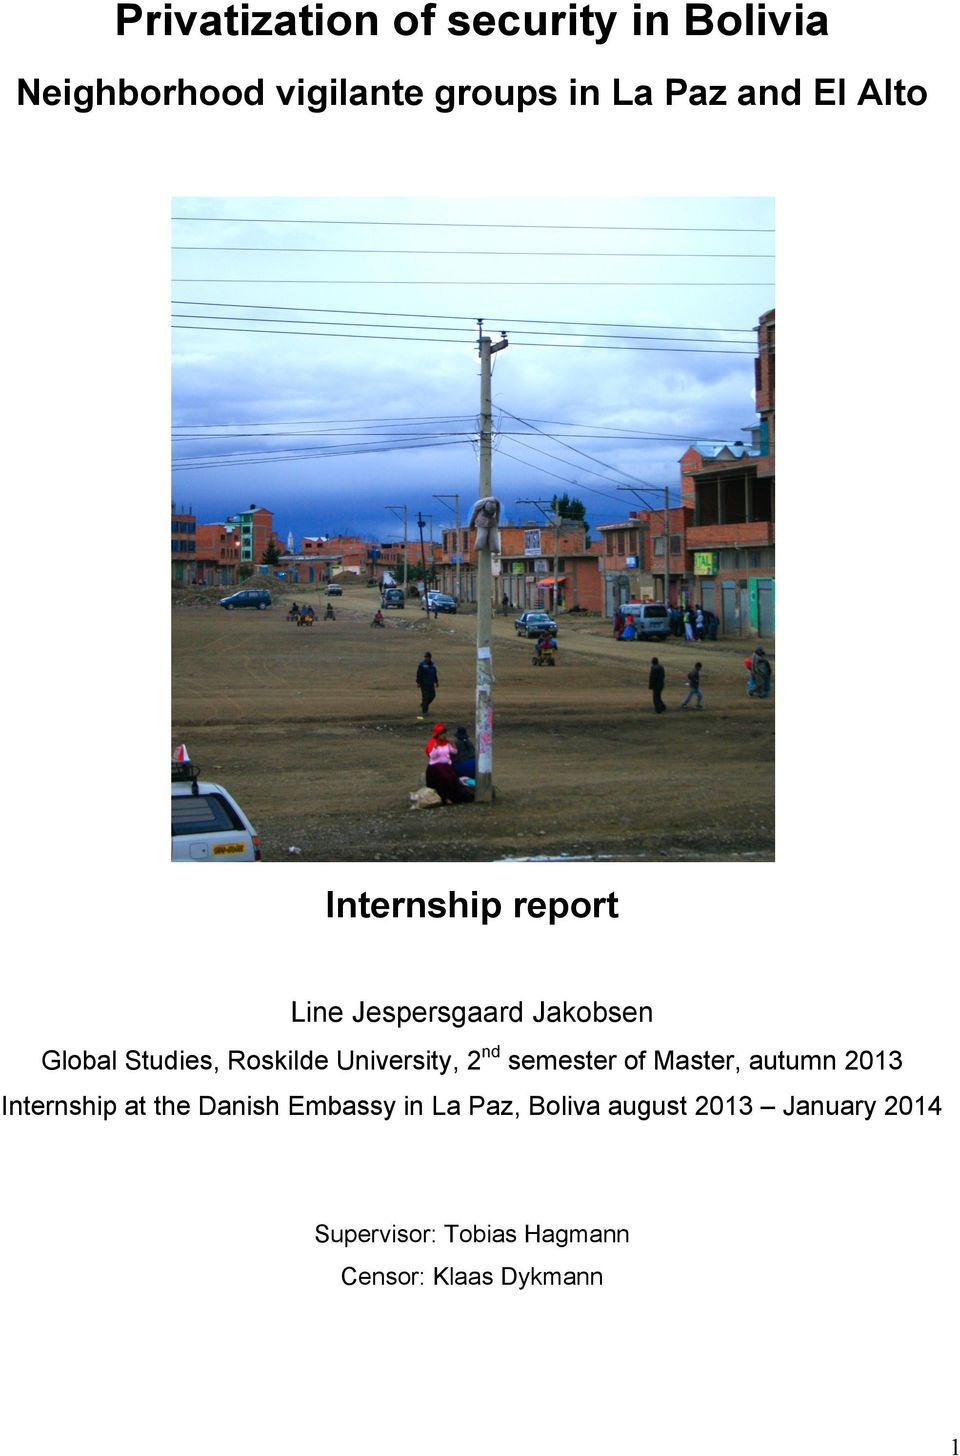 University, 2nd semester of Master, autumn 2013 Internship at the Danish Embassy in